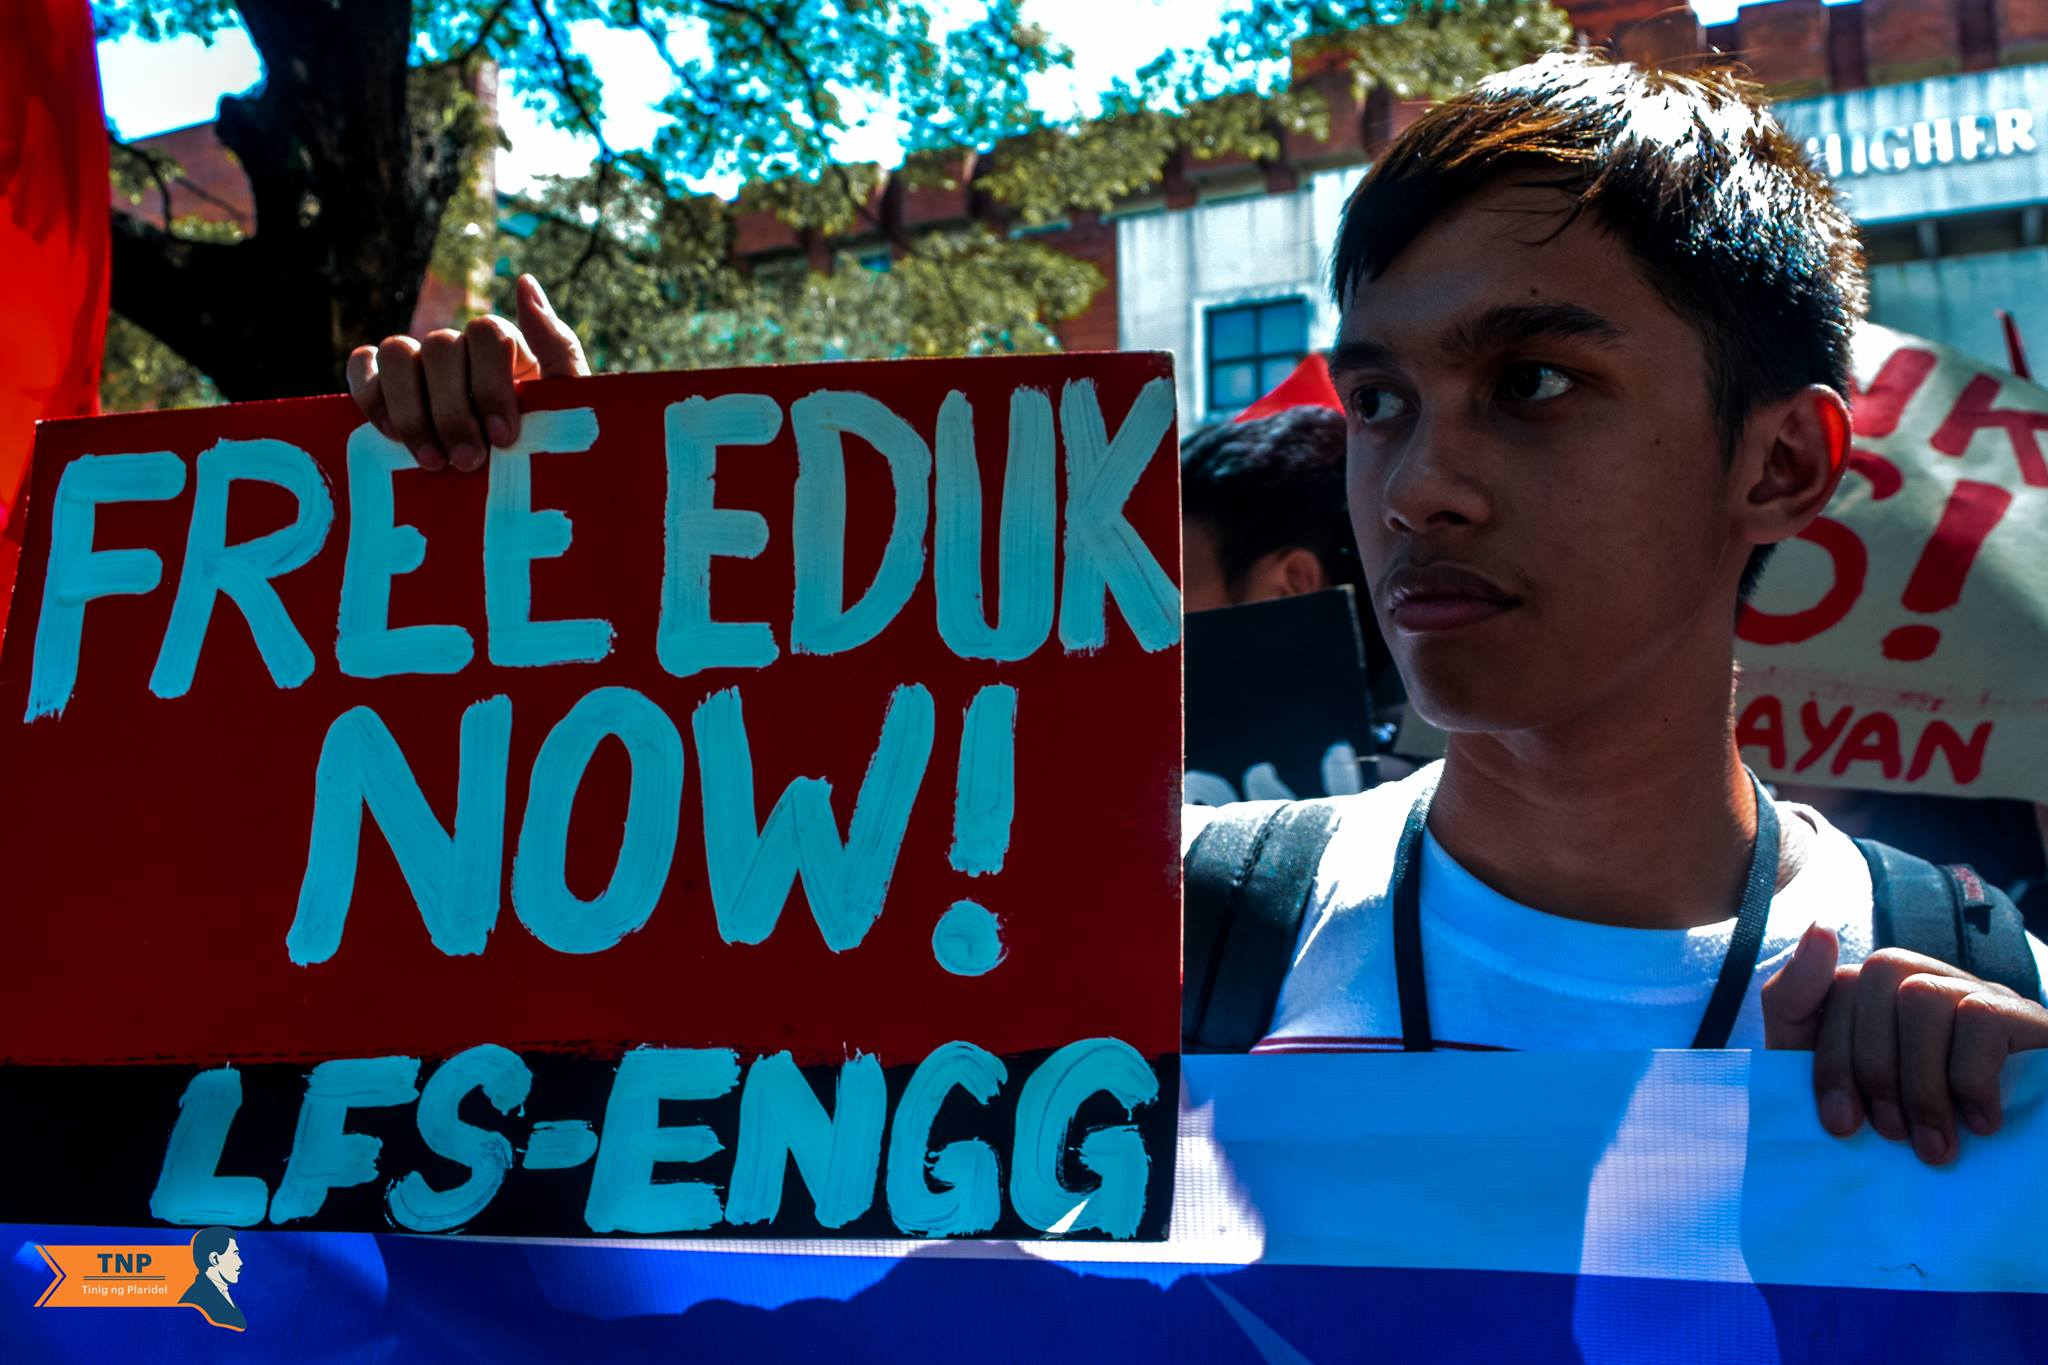 CHED exec seeks revision of CHED-DBM memo following protests, criticisms